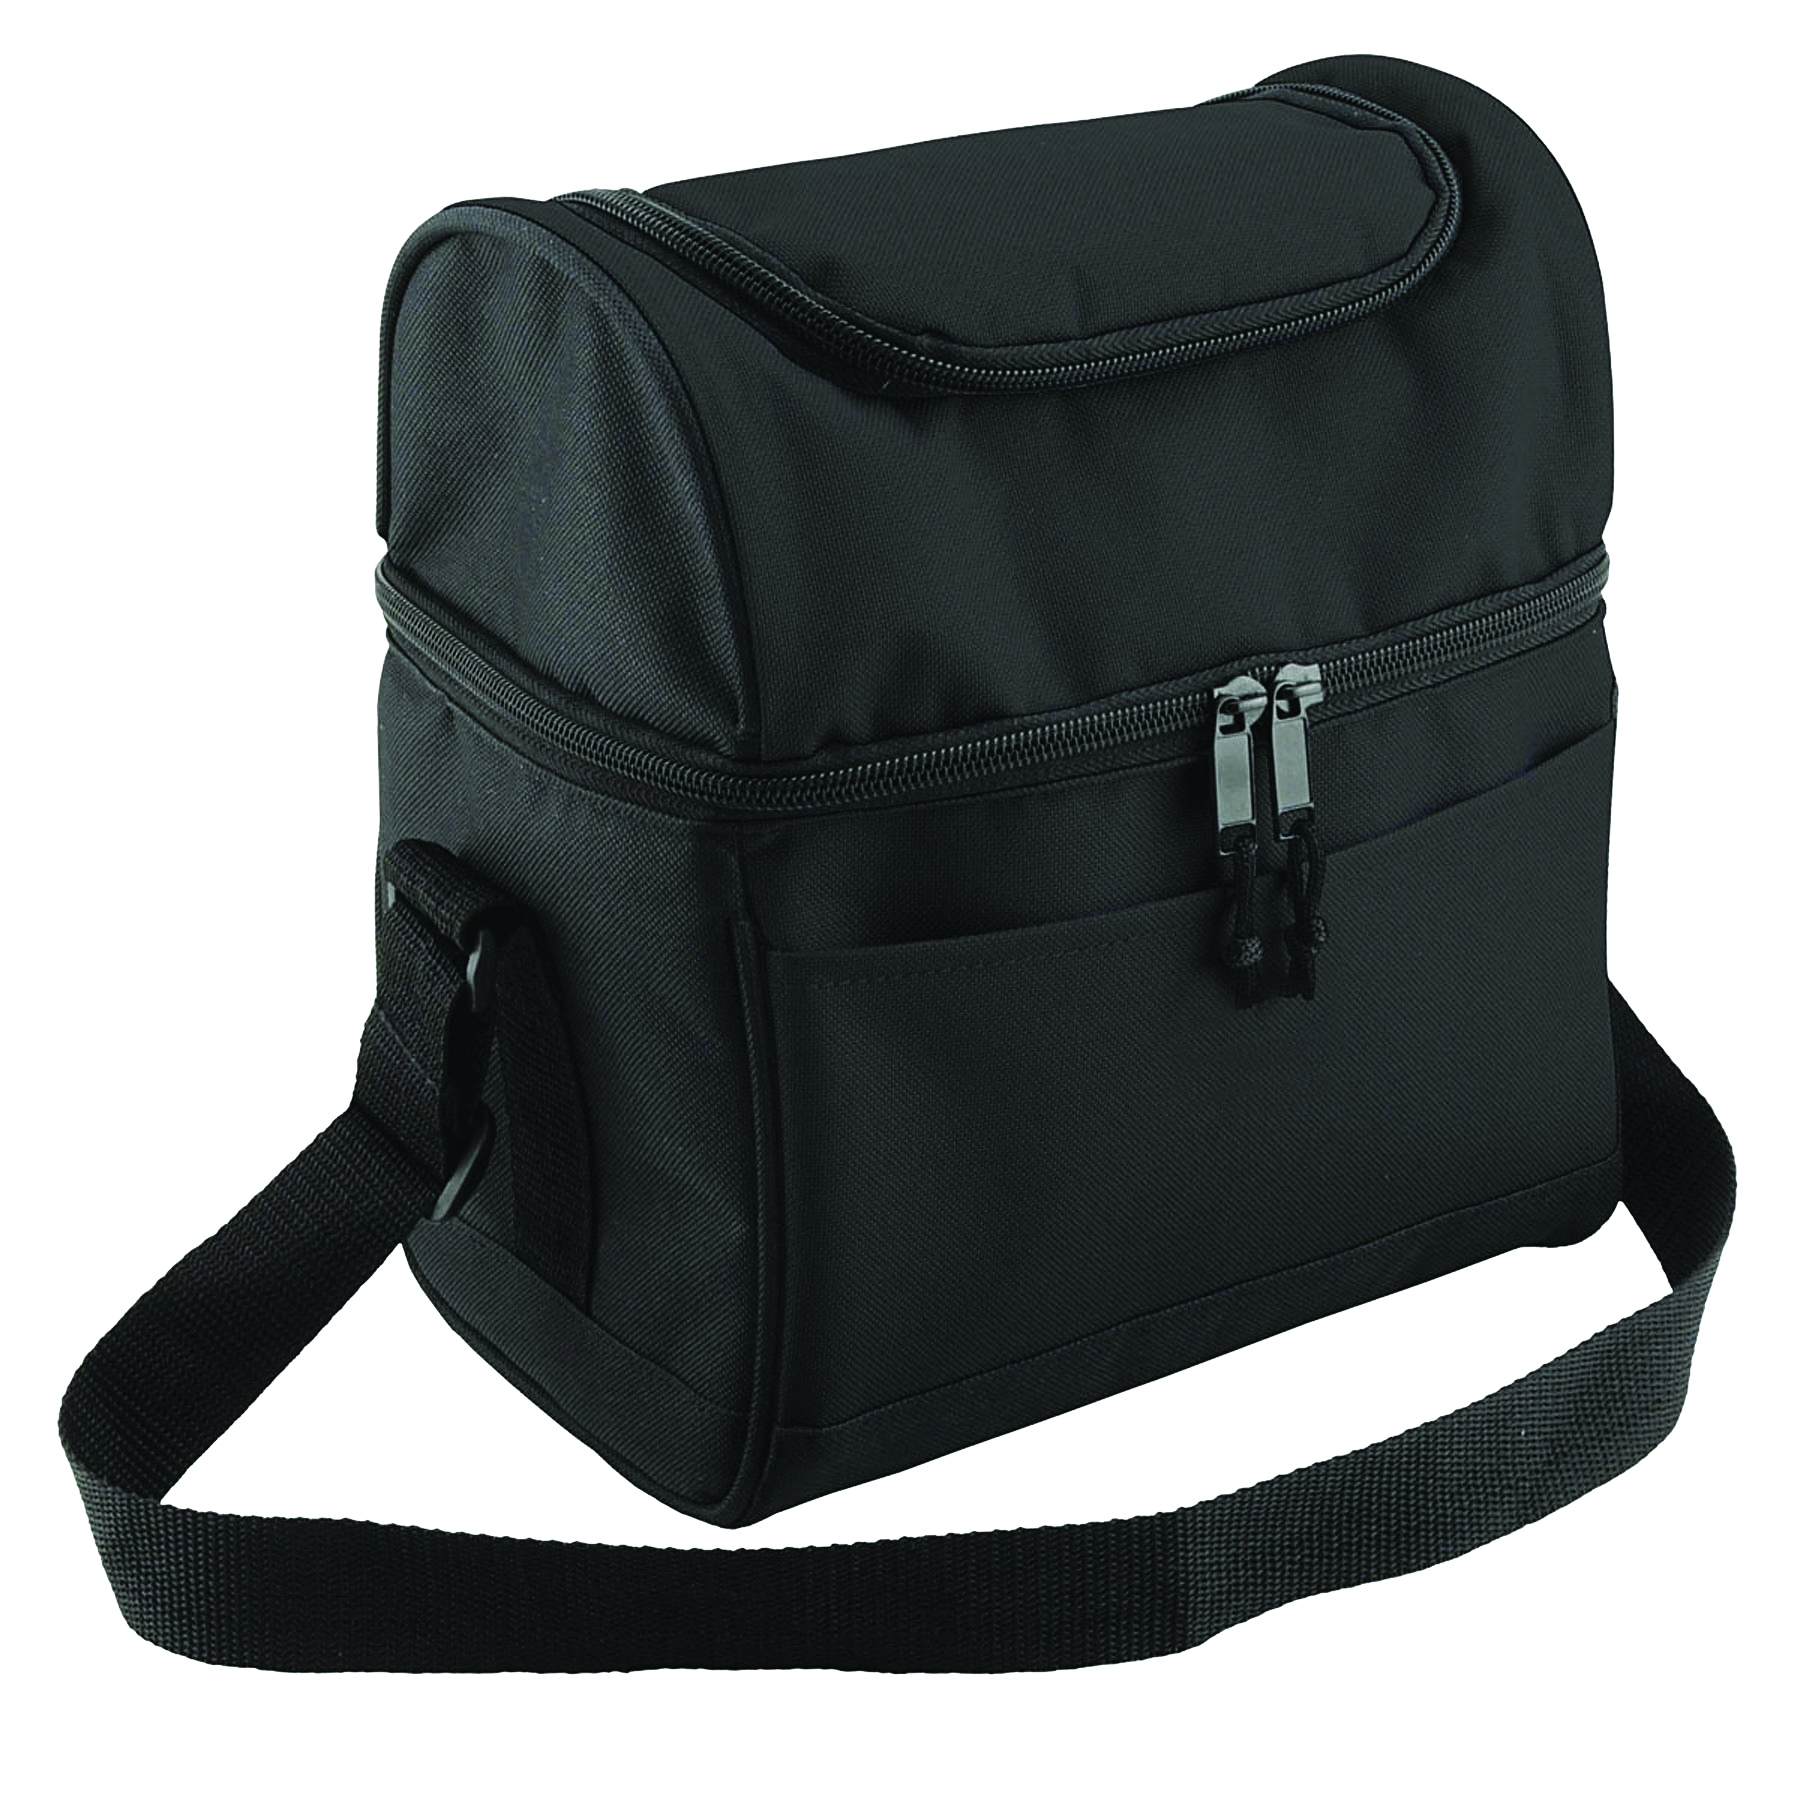 KC Caps Deluxe Insulated Lunch Cooler Bag with Dual Compartment, Zipper Closure Adjustable Strap